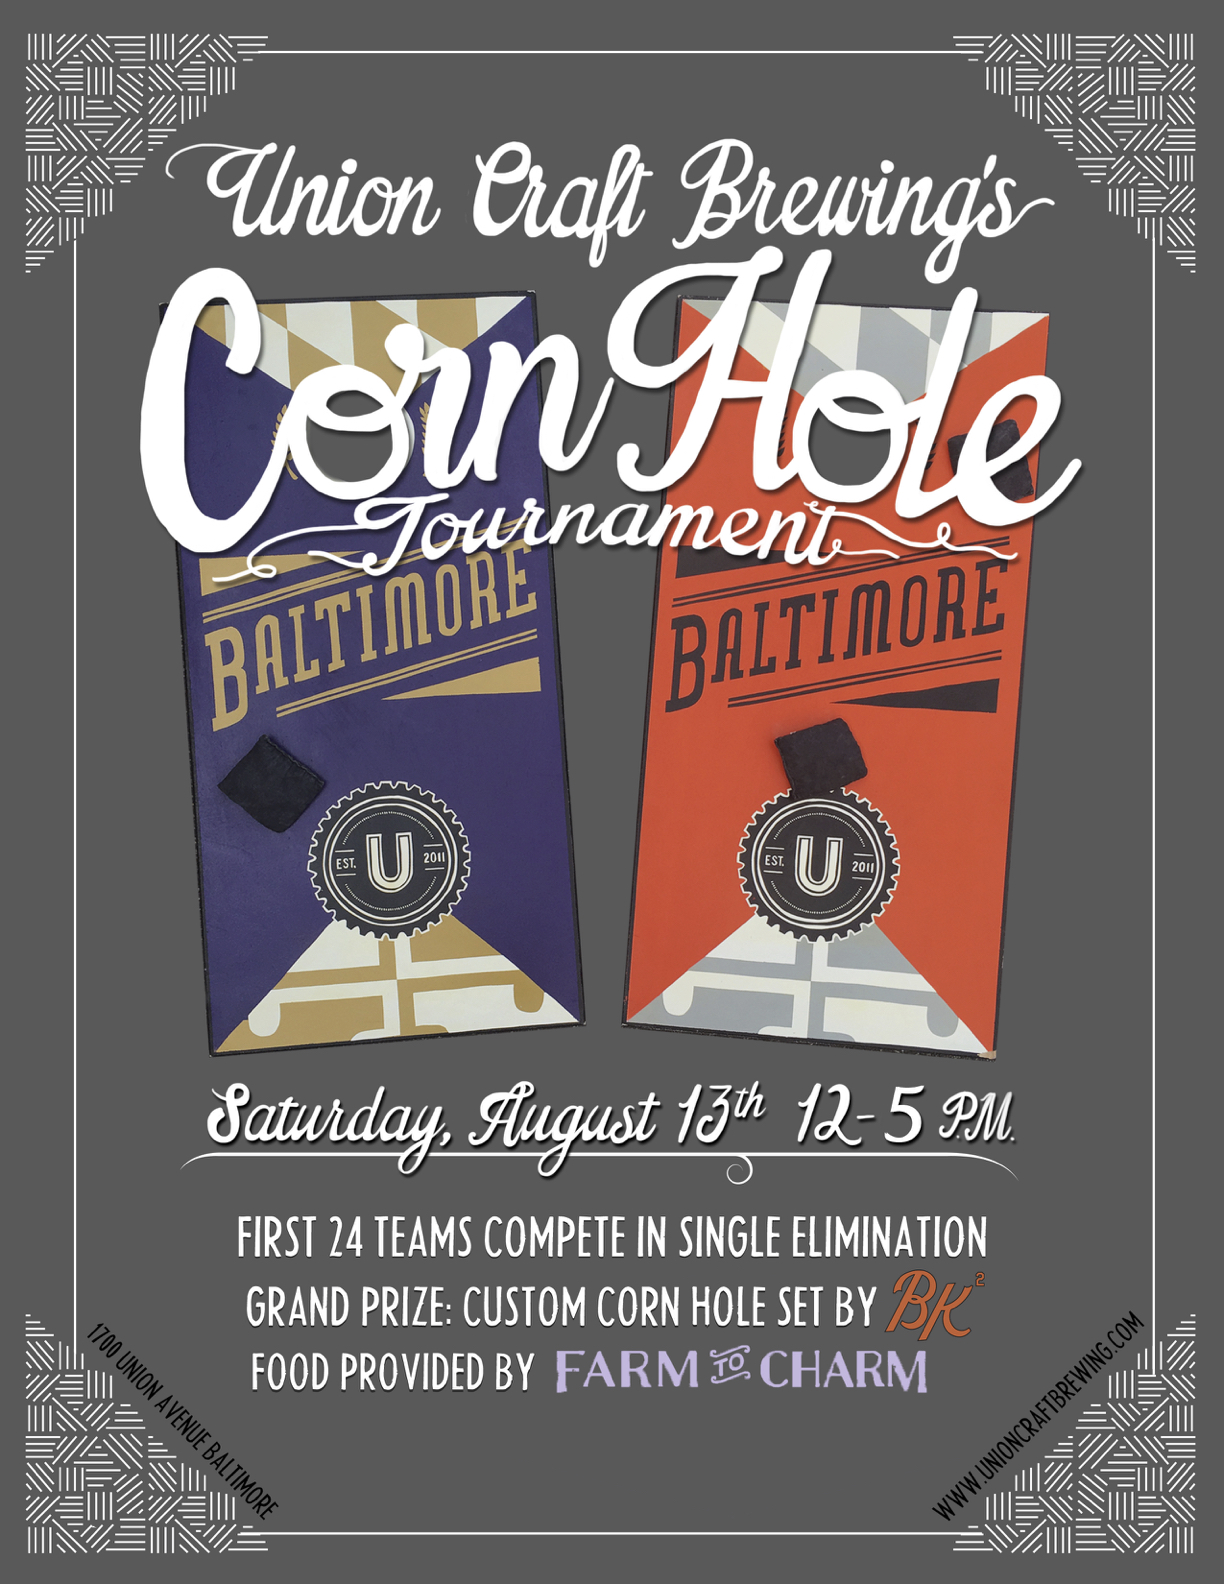 Union craft brewing union craft brewing 39 s corn hole for Union craft brewing baltimore md